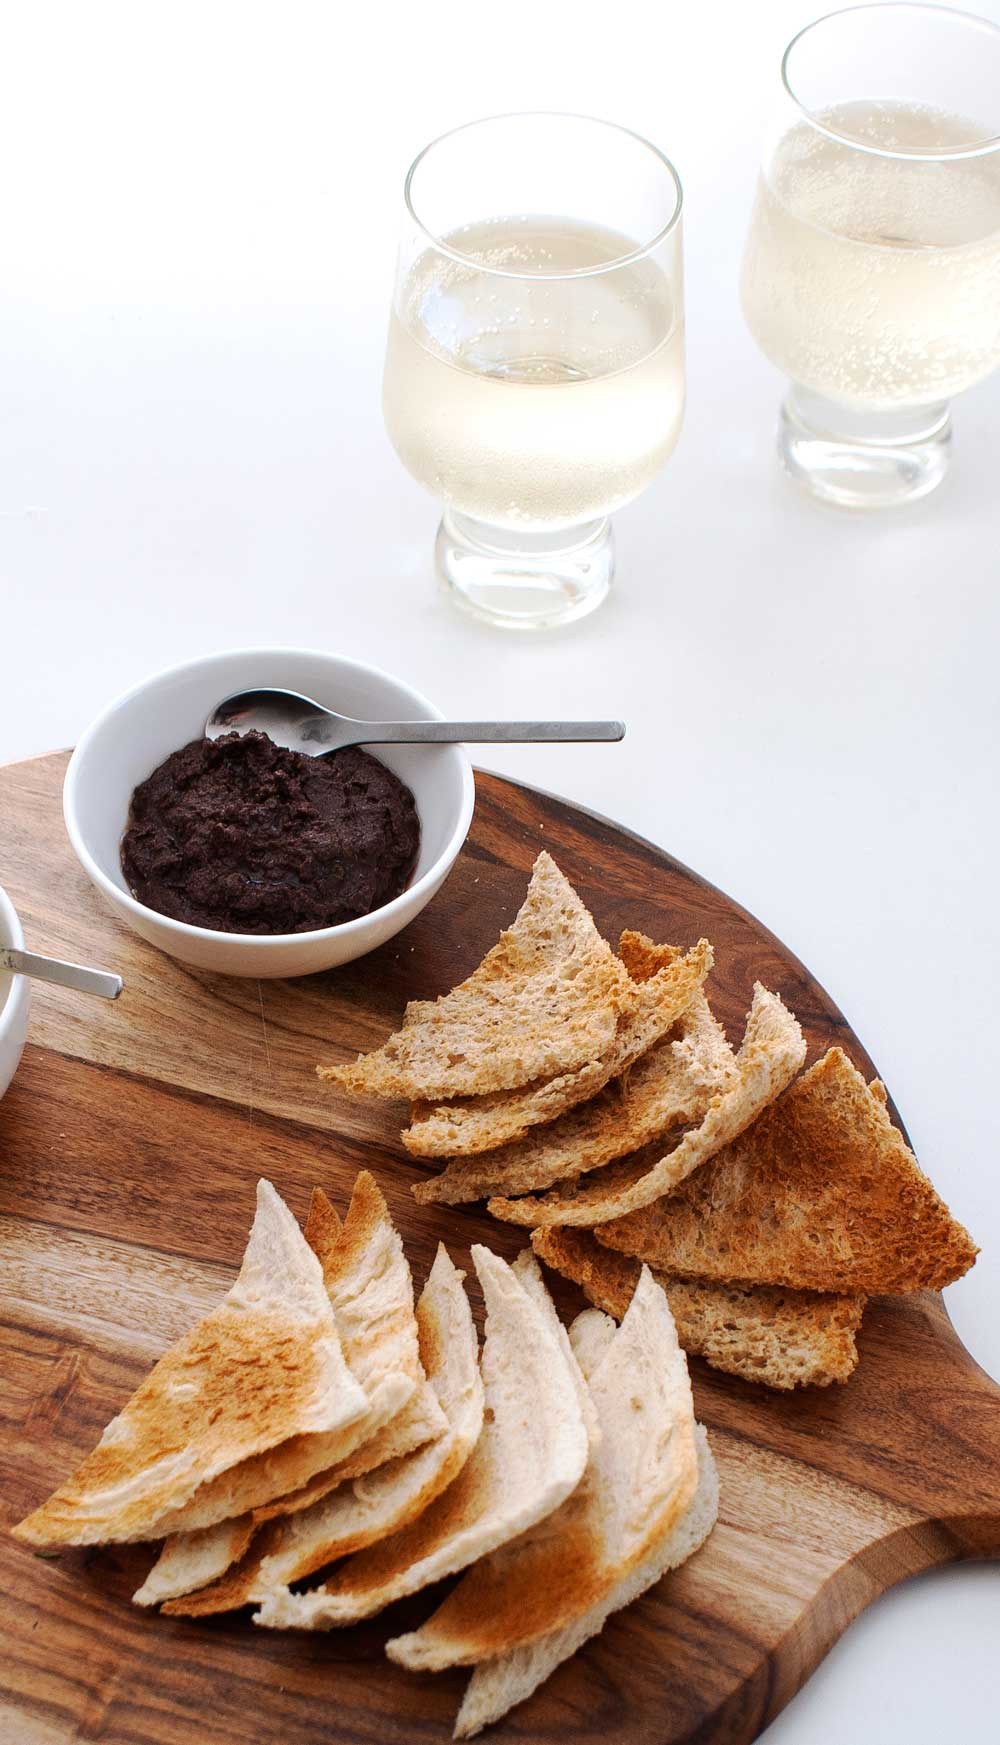 Saturday Afternoon Platter - Kalamata Olive Tapenade. A delicious and rich dip or spread.